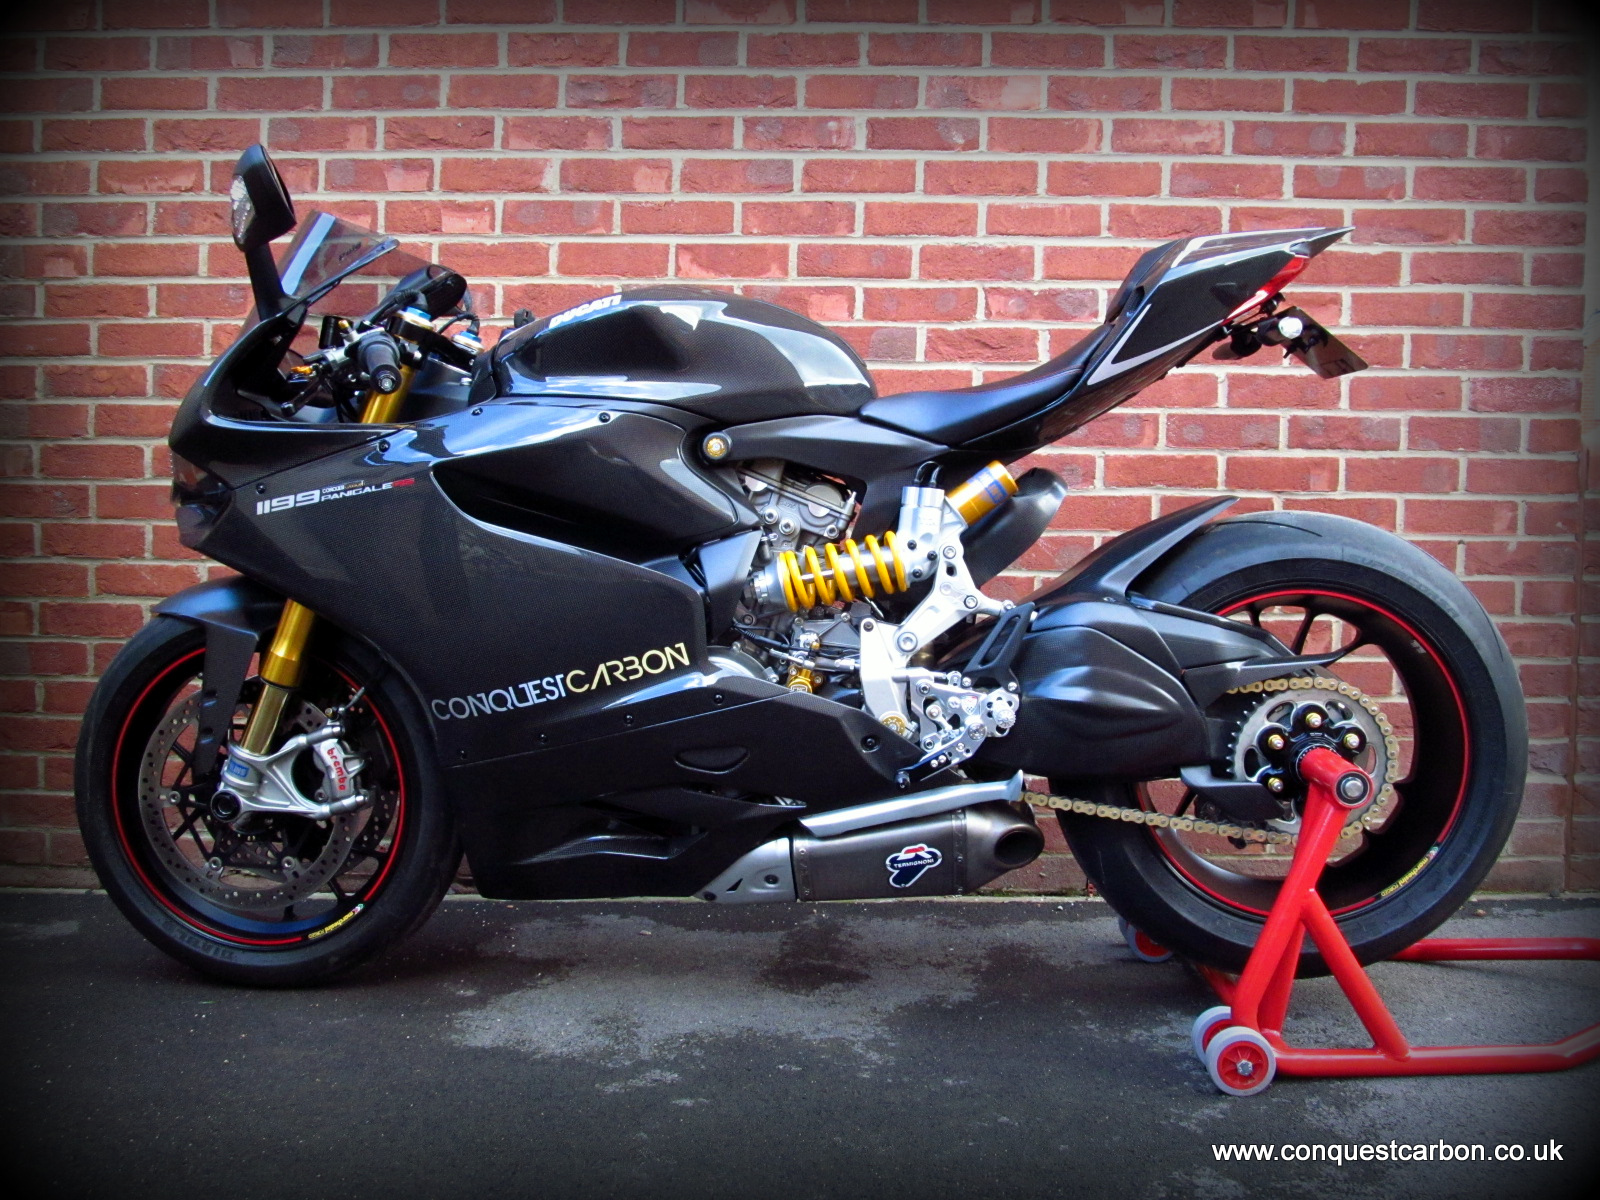 Conquest Carbon's Ducati Panigale 1199RS Show Bike